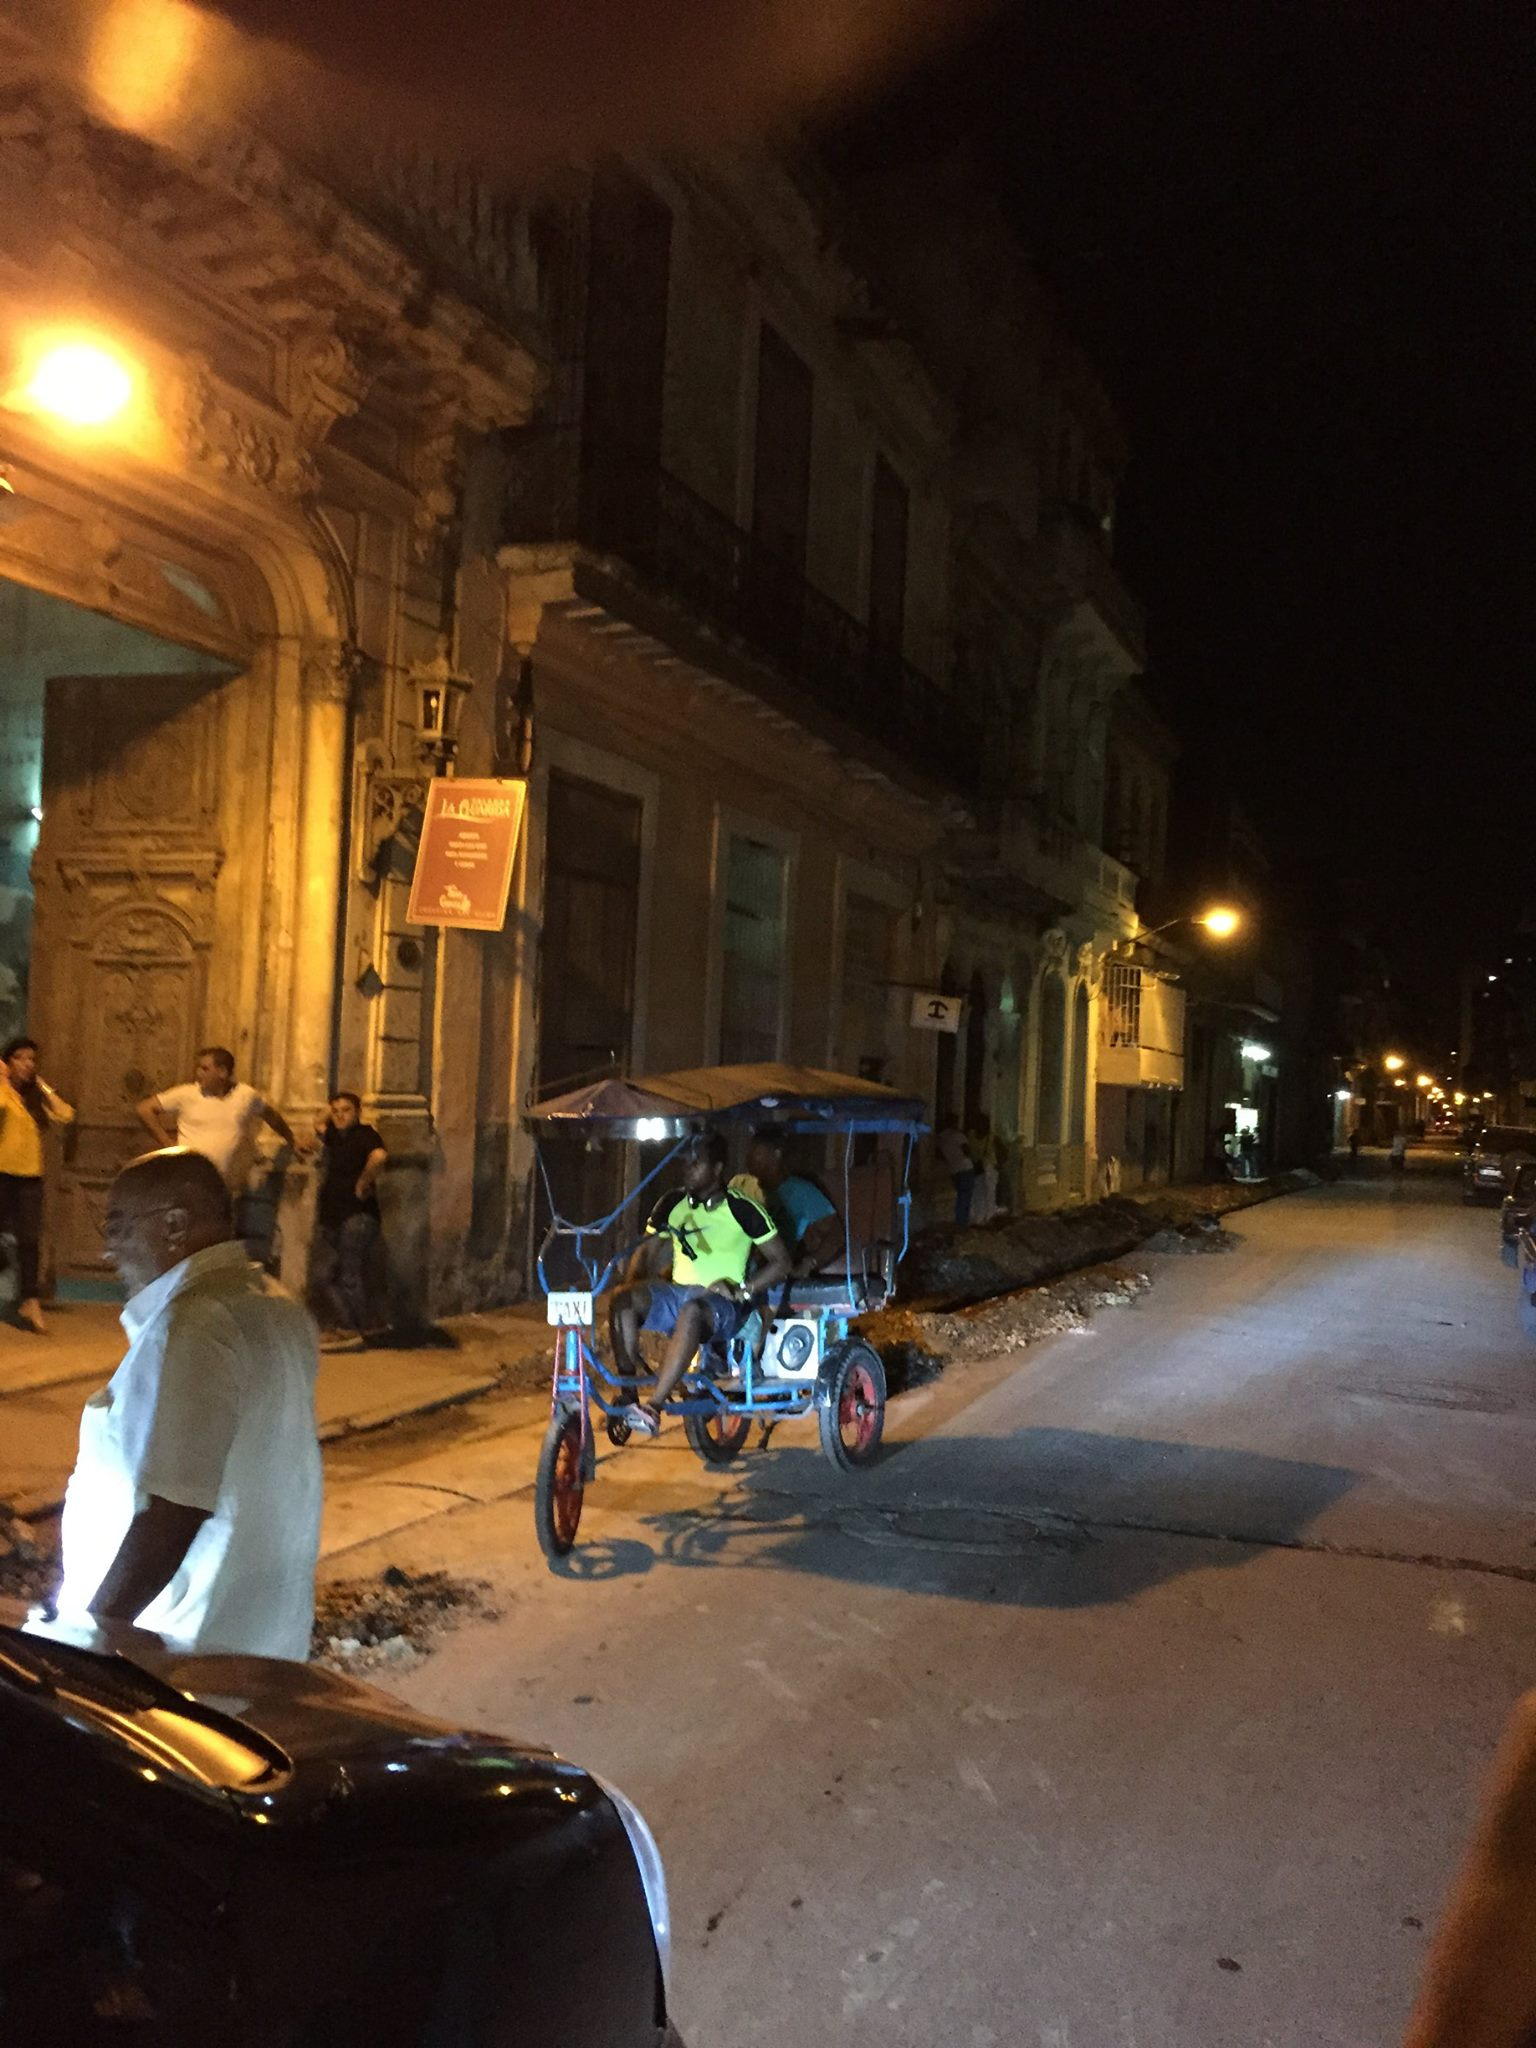 havana-night-pedicab-june2015.jpg